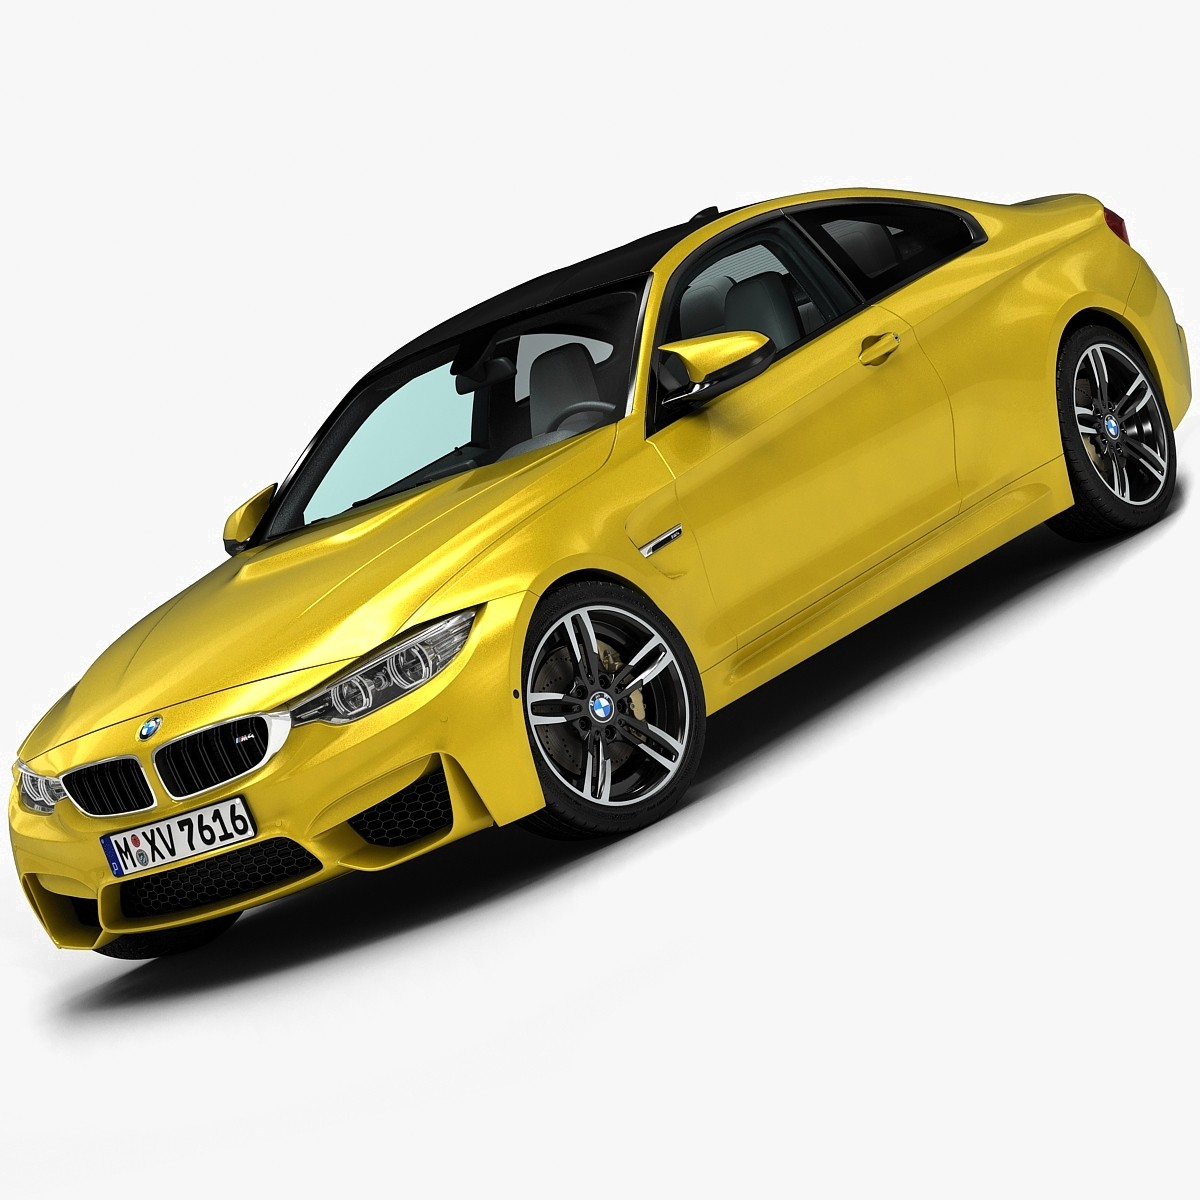 Bmw X2 M Sport 2018 3d Model: Searching 3D Models For Cnc-sable-2015